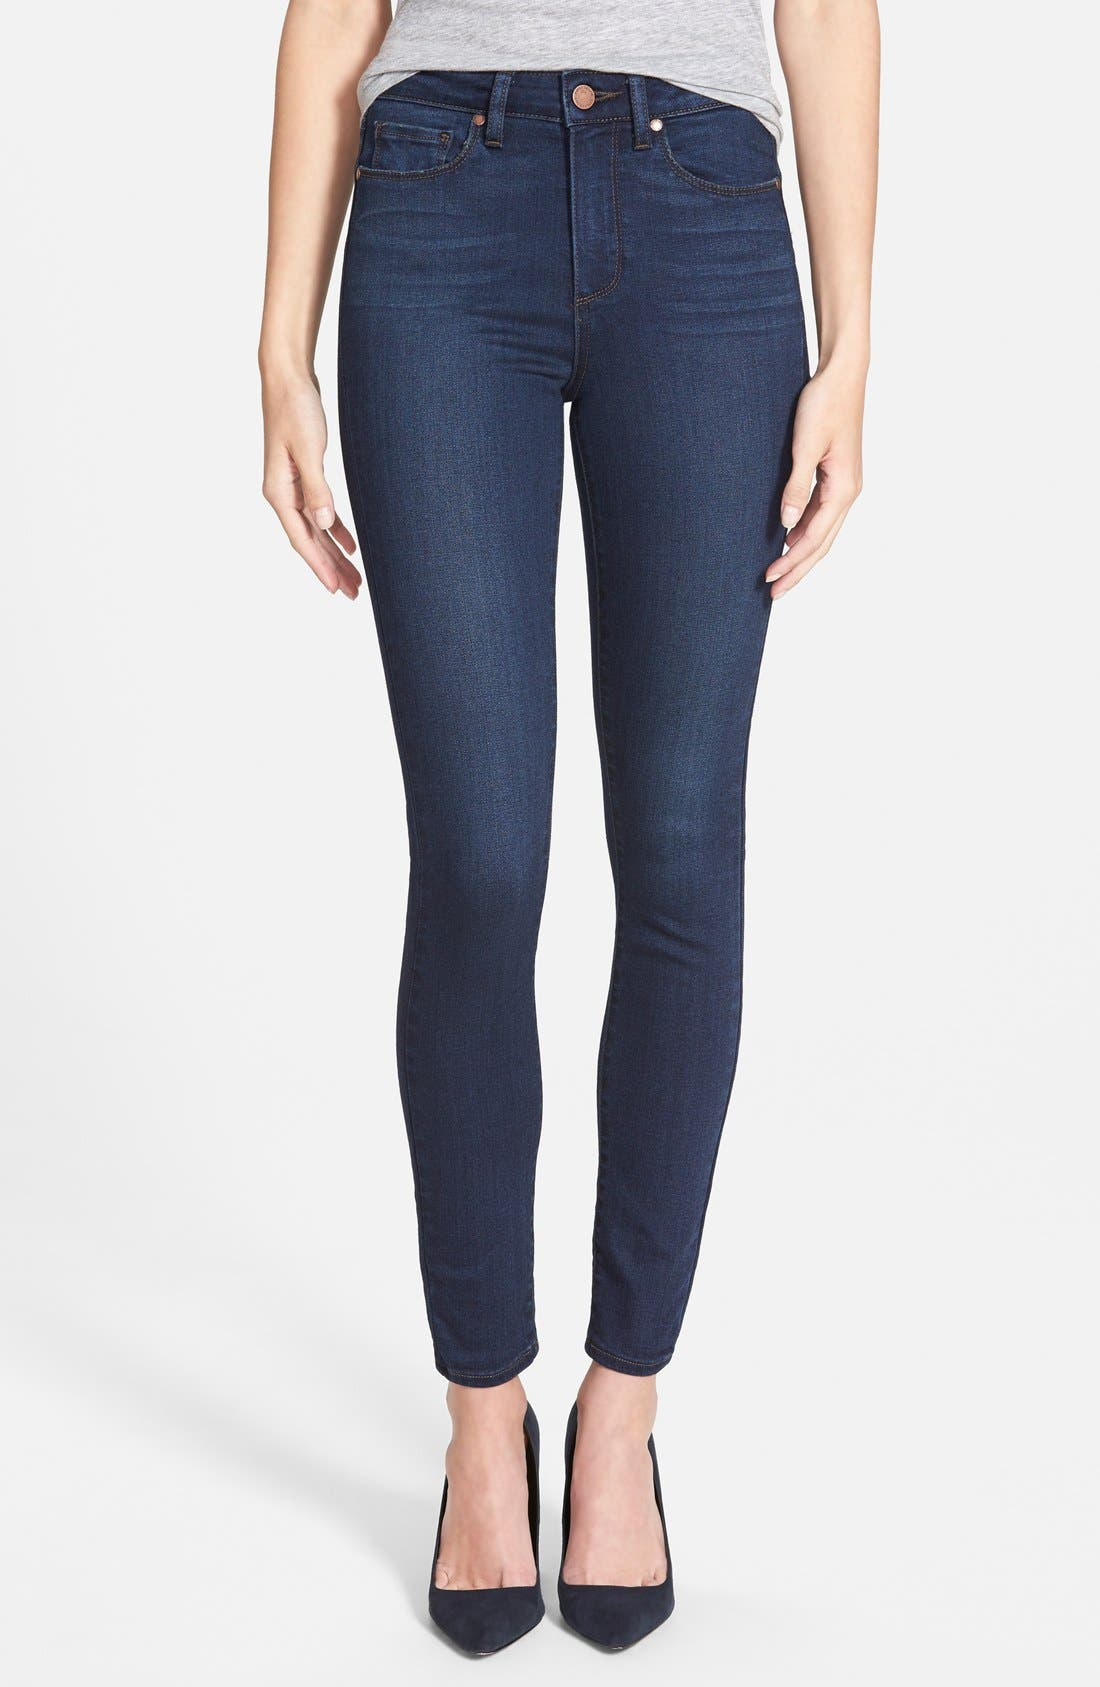 Alternate Image 1 Selected - Paige Denim 'Hoxton' High Rise Ultra Skinny Jeans (Takara) (Nordstrom Exclusive)